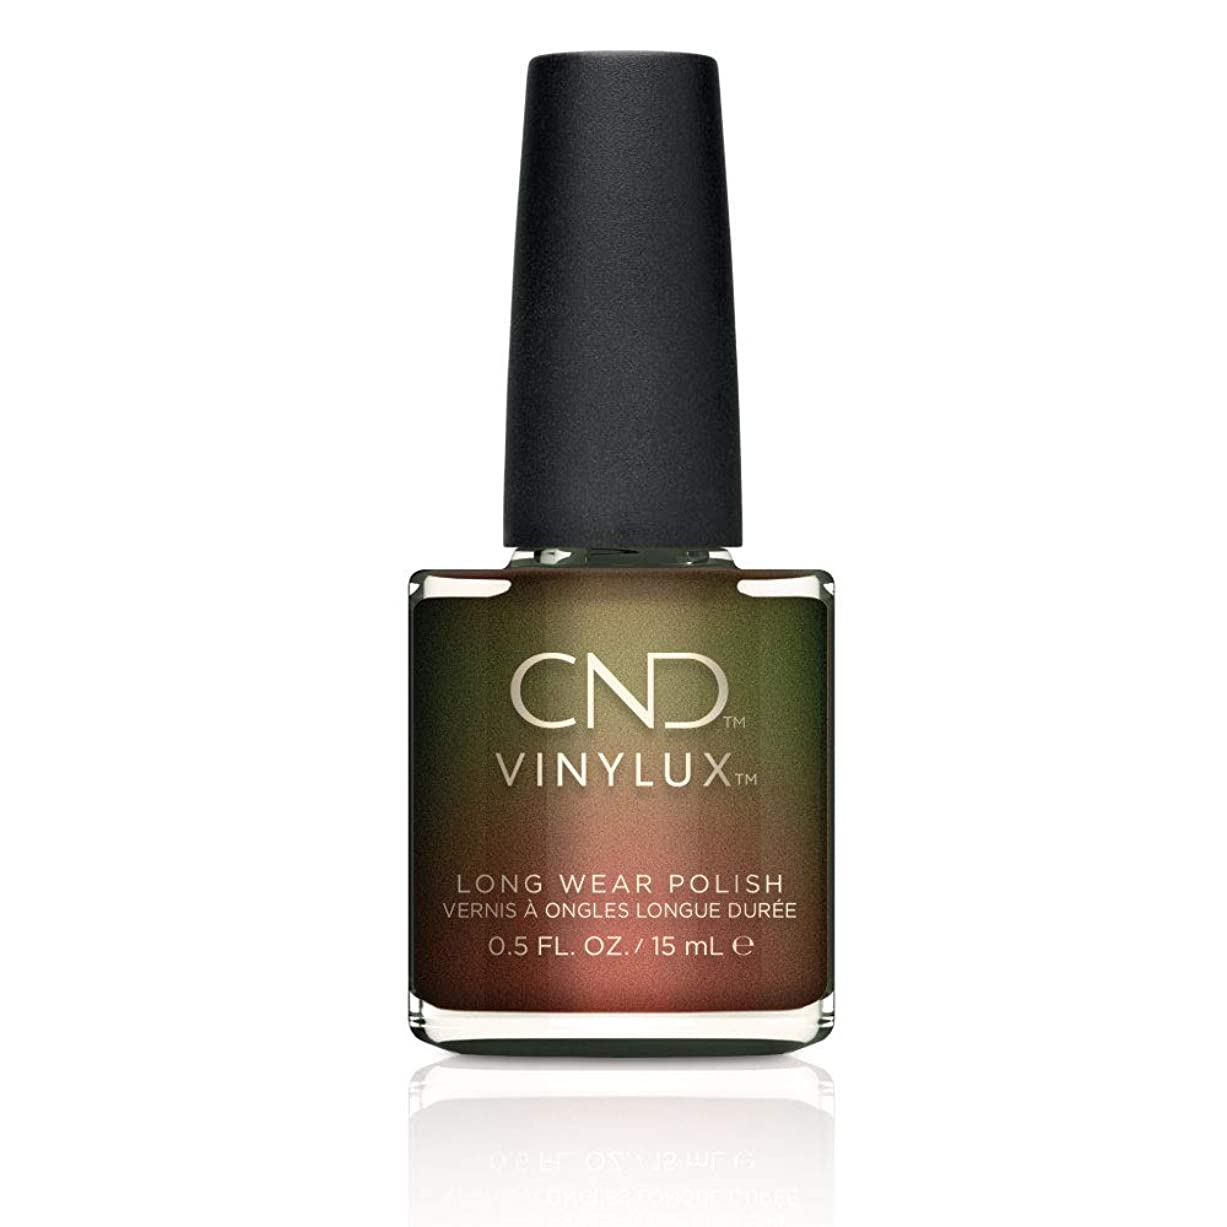 辞任する線所得CND Vinylux Nail Polish - Fall 2017 Night Spell Collection - Hypnotic Dreams - 0.5oz / 15ml